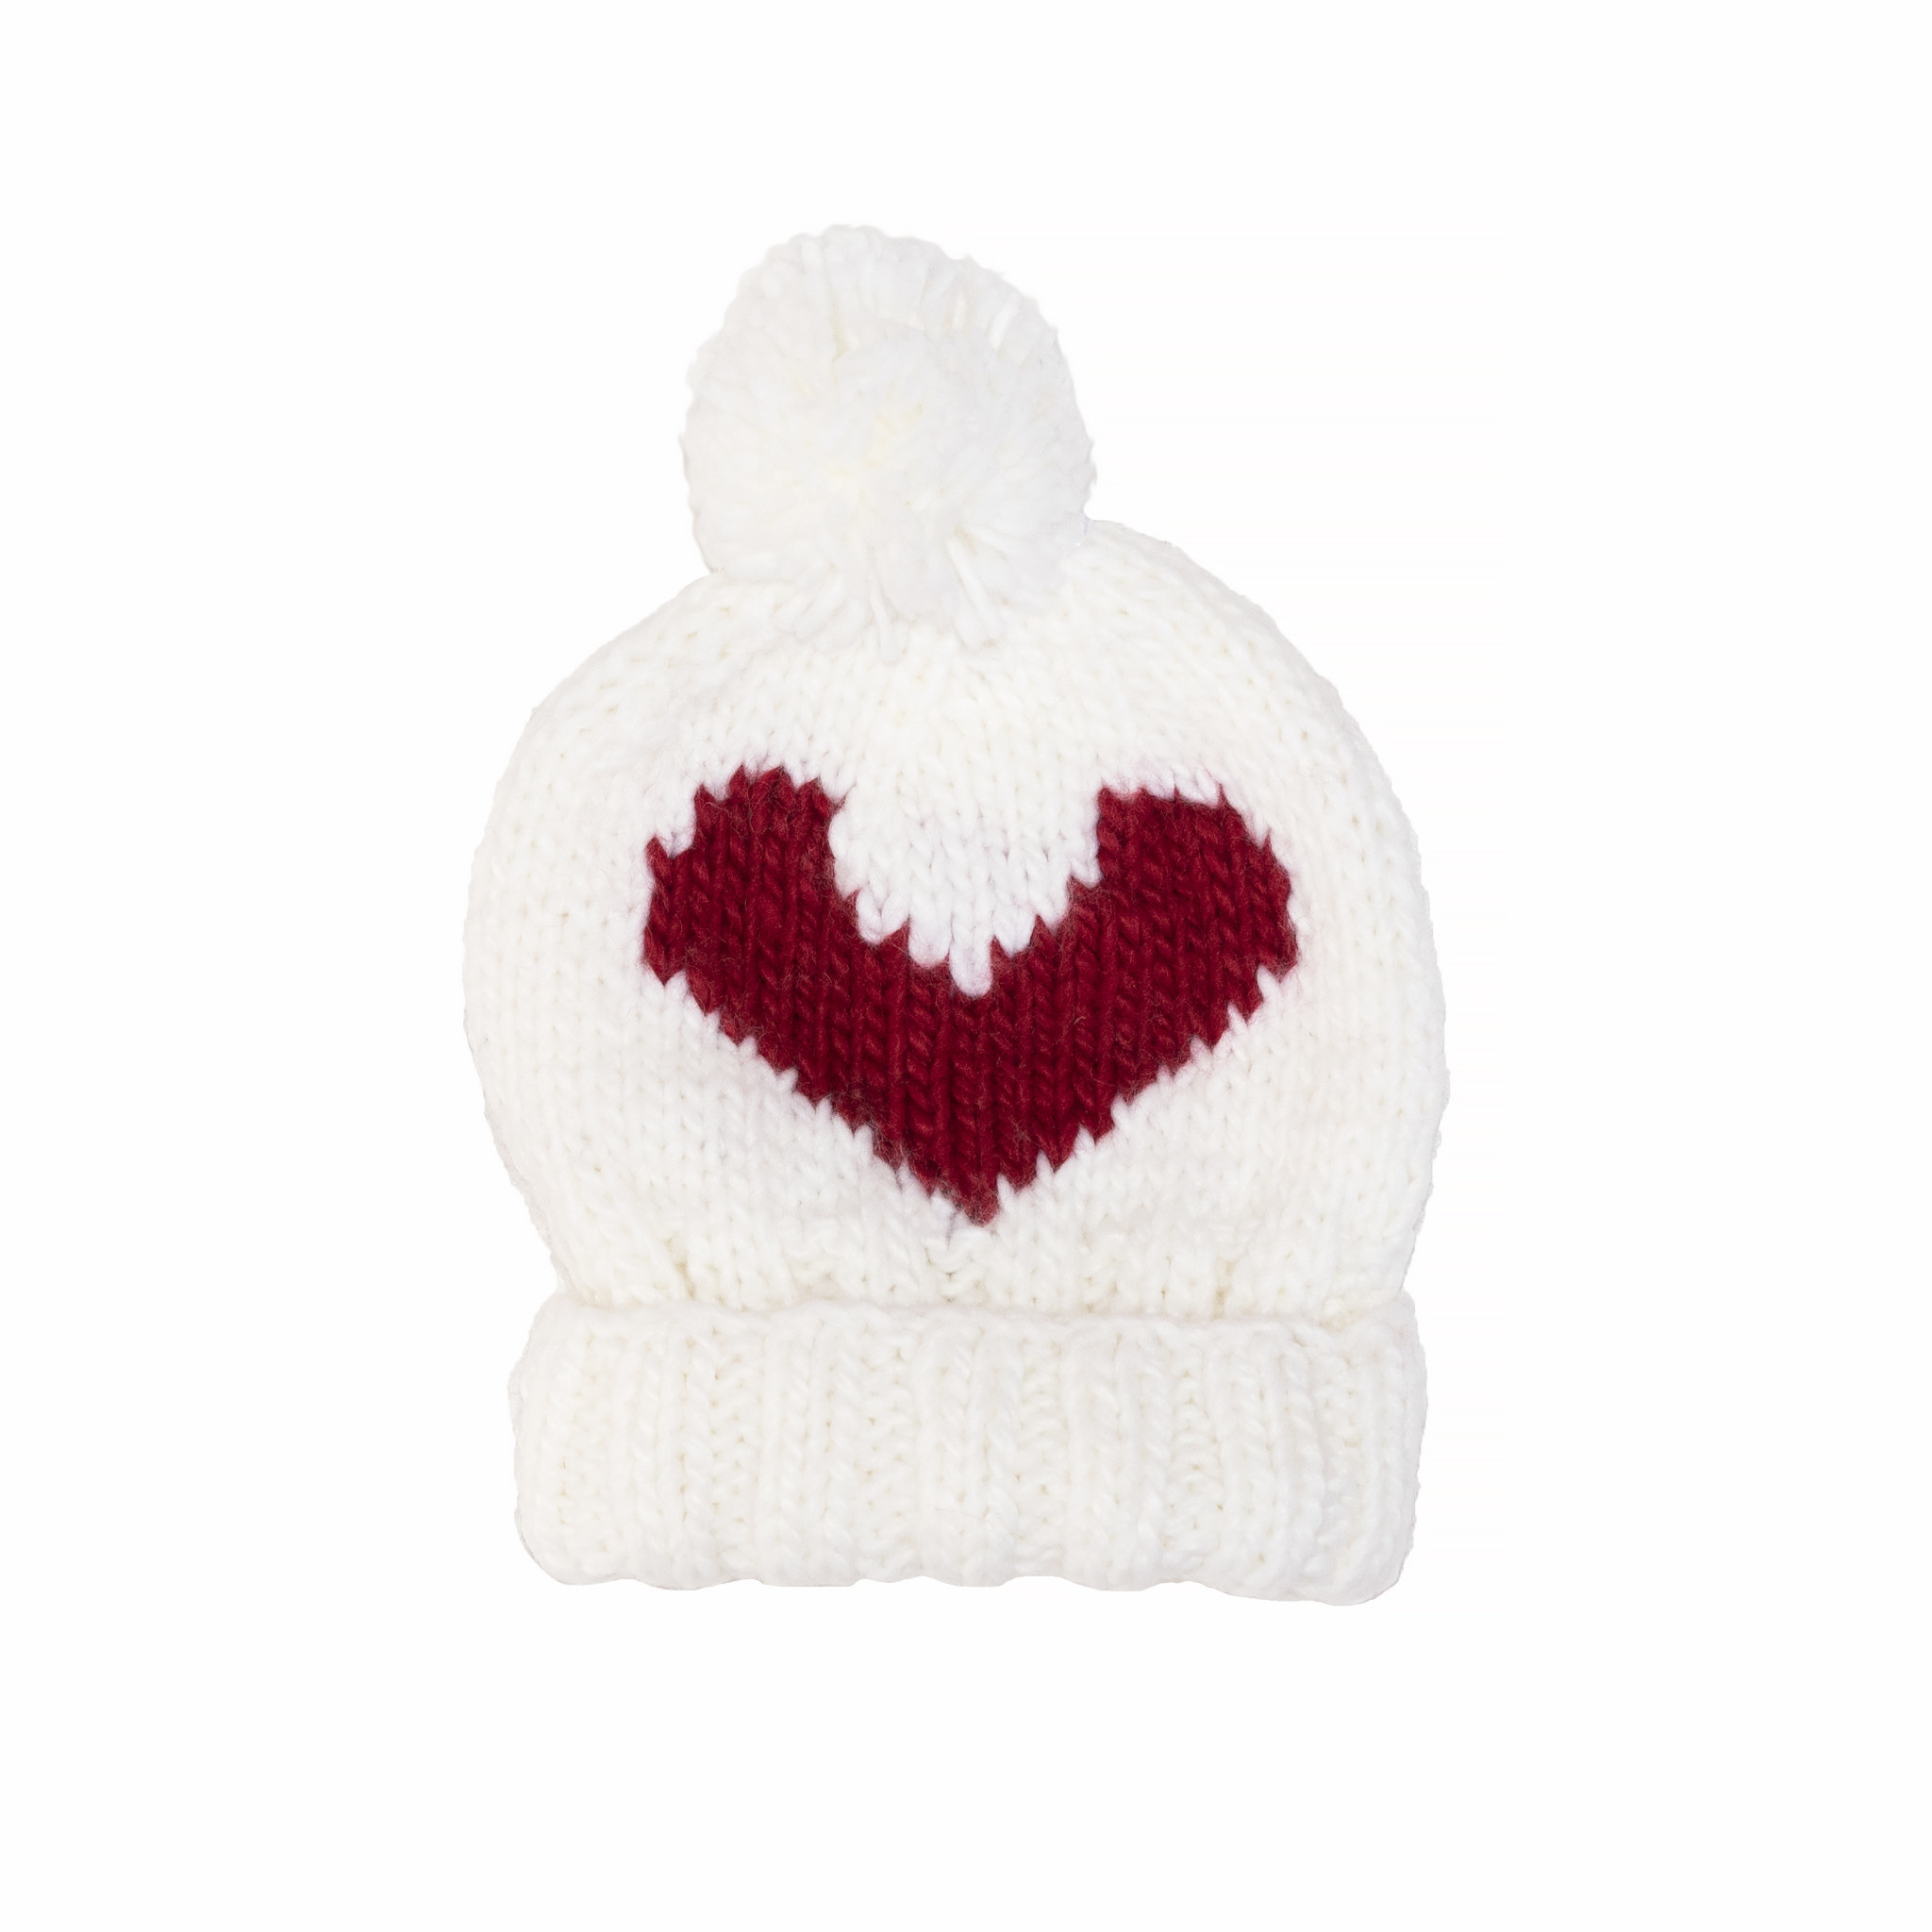 The Blueberry Hill The Blueberry Hill Heart Beanie